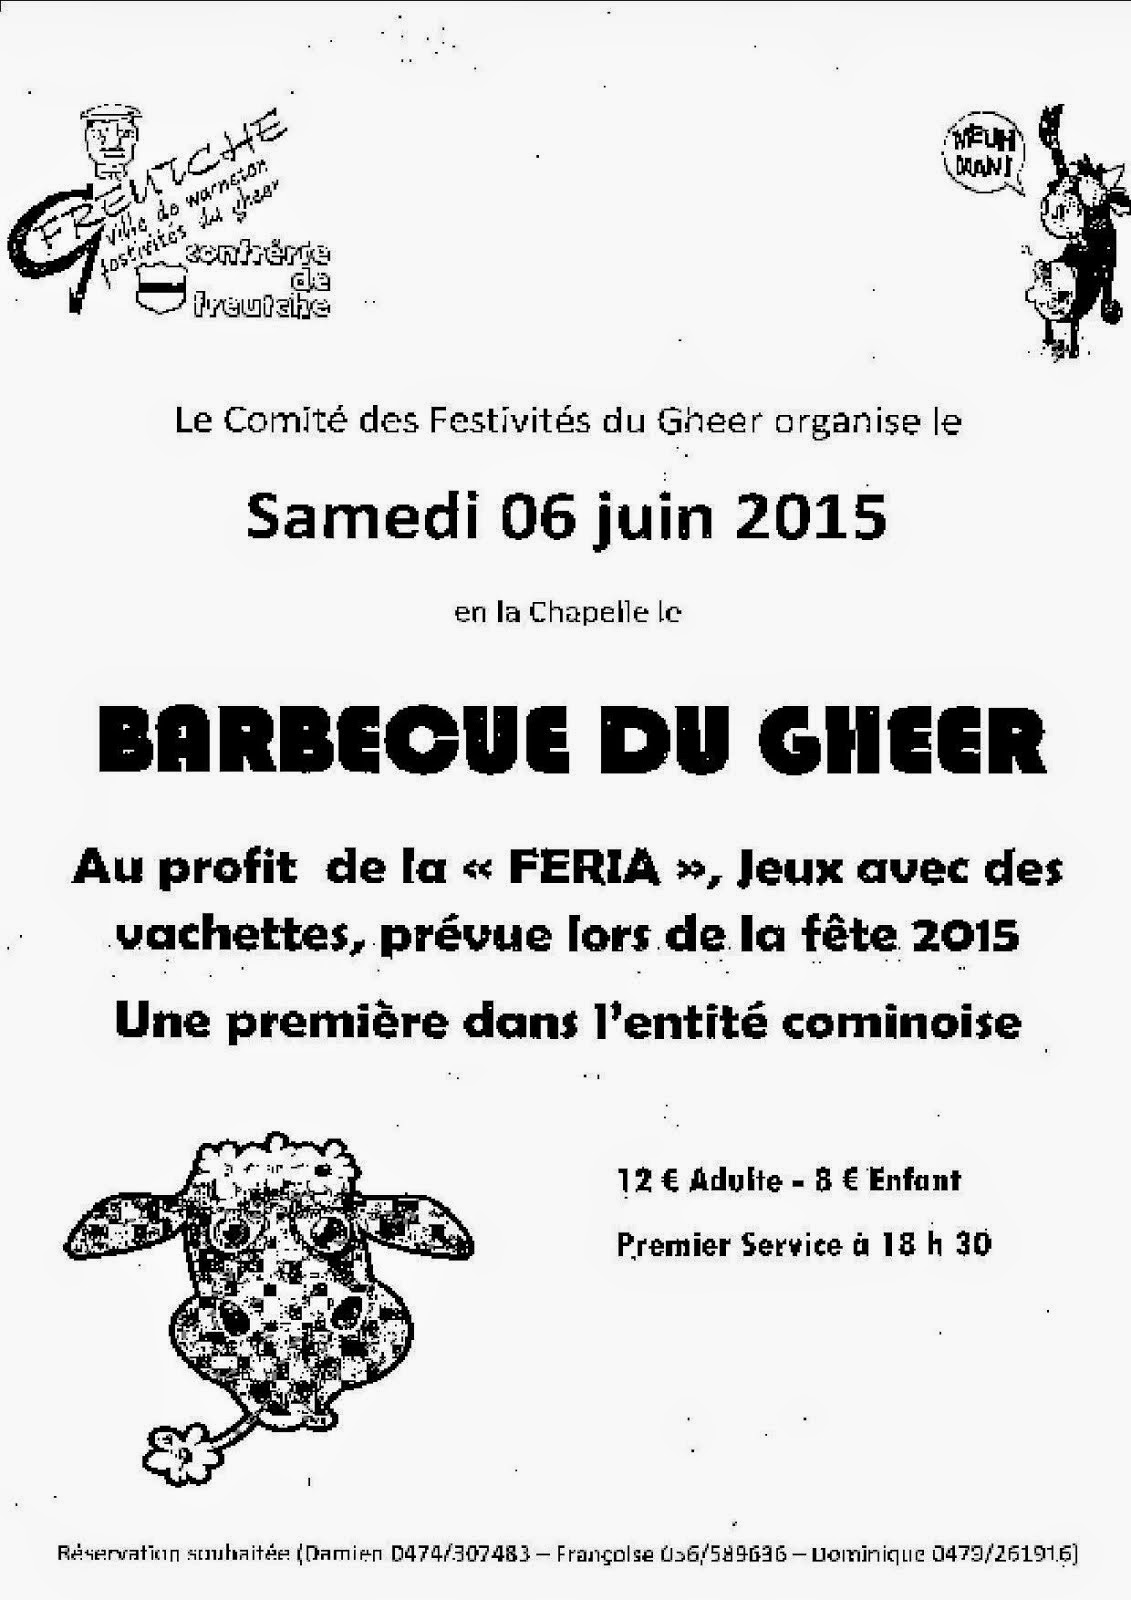 6 JUIN BARBECUE DU GHEER